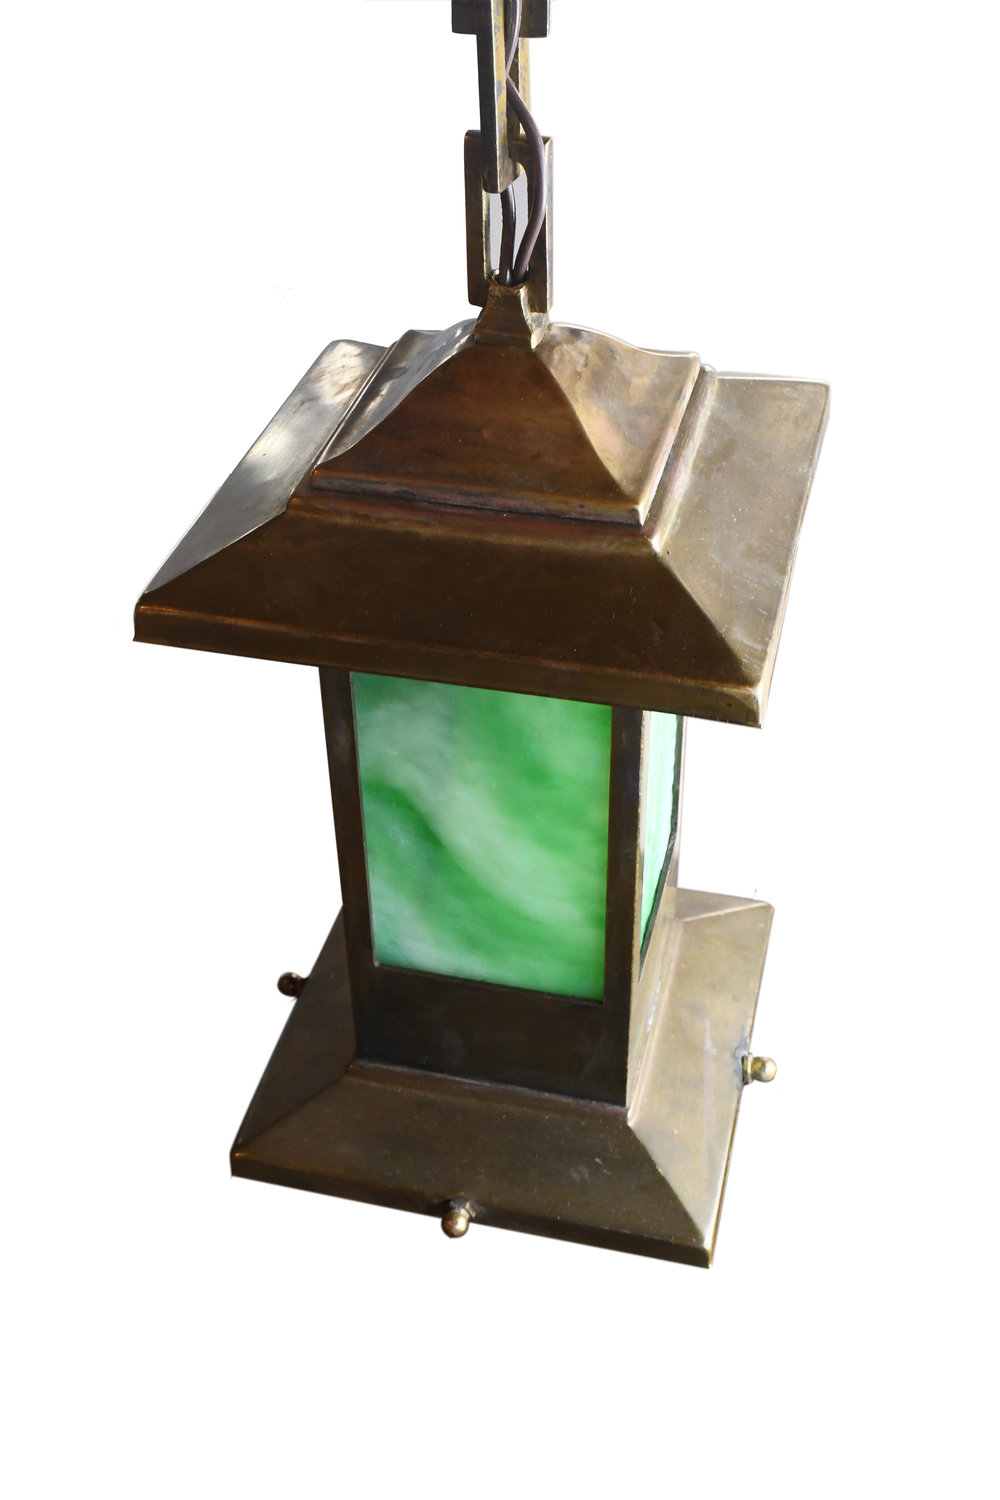 47596-rectangular-brass-handel-pendant-with-green-glass-detail-41.jpg